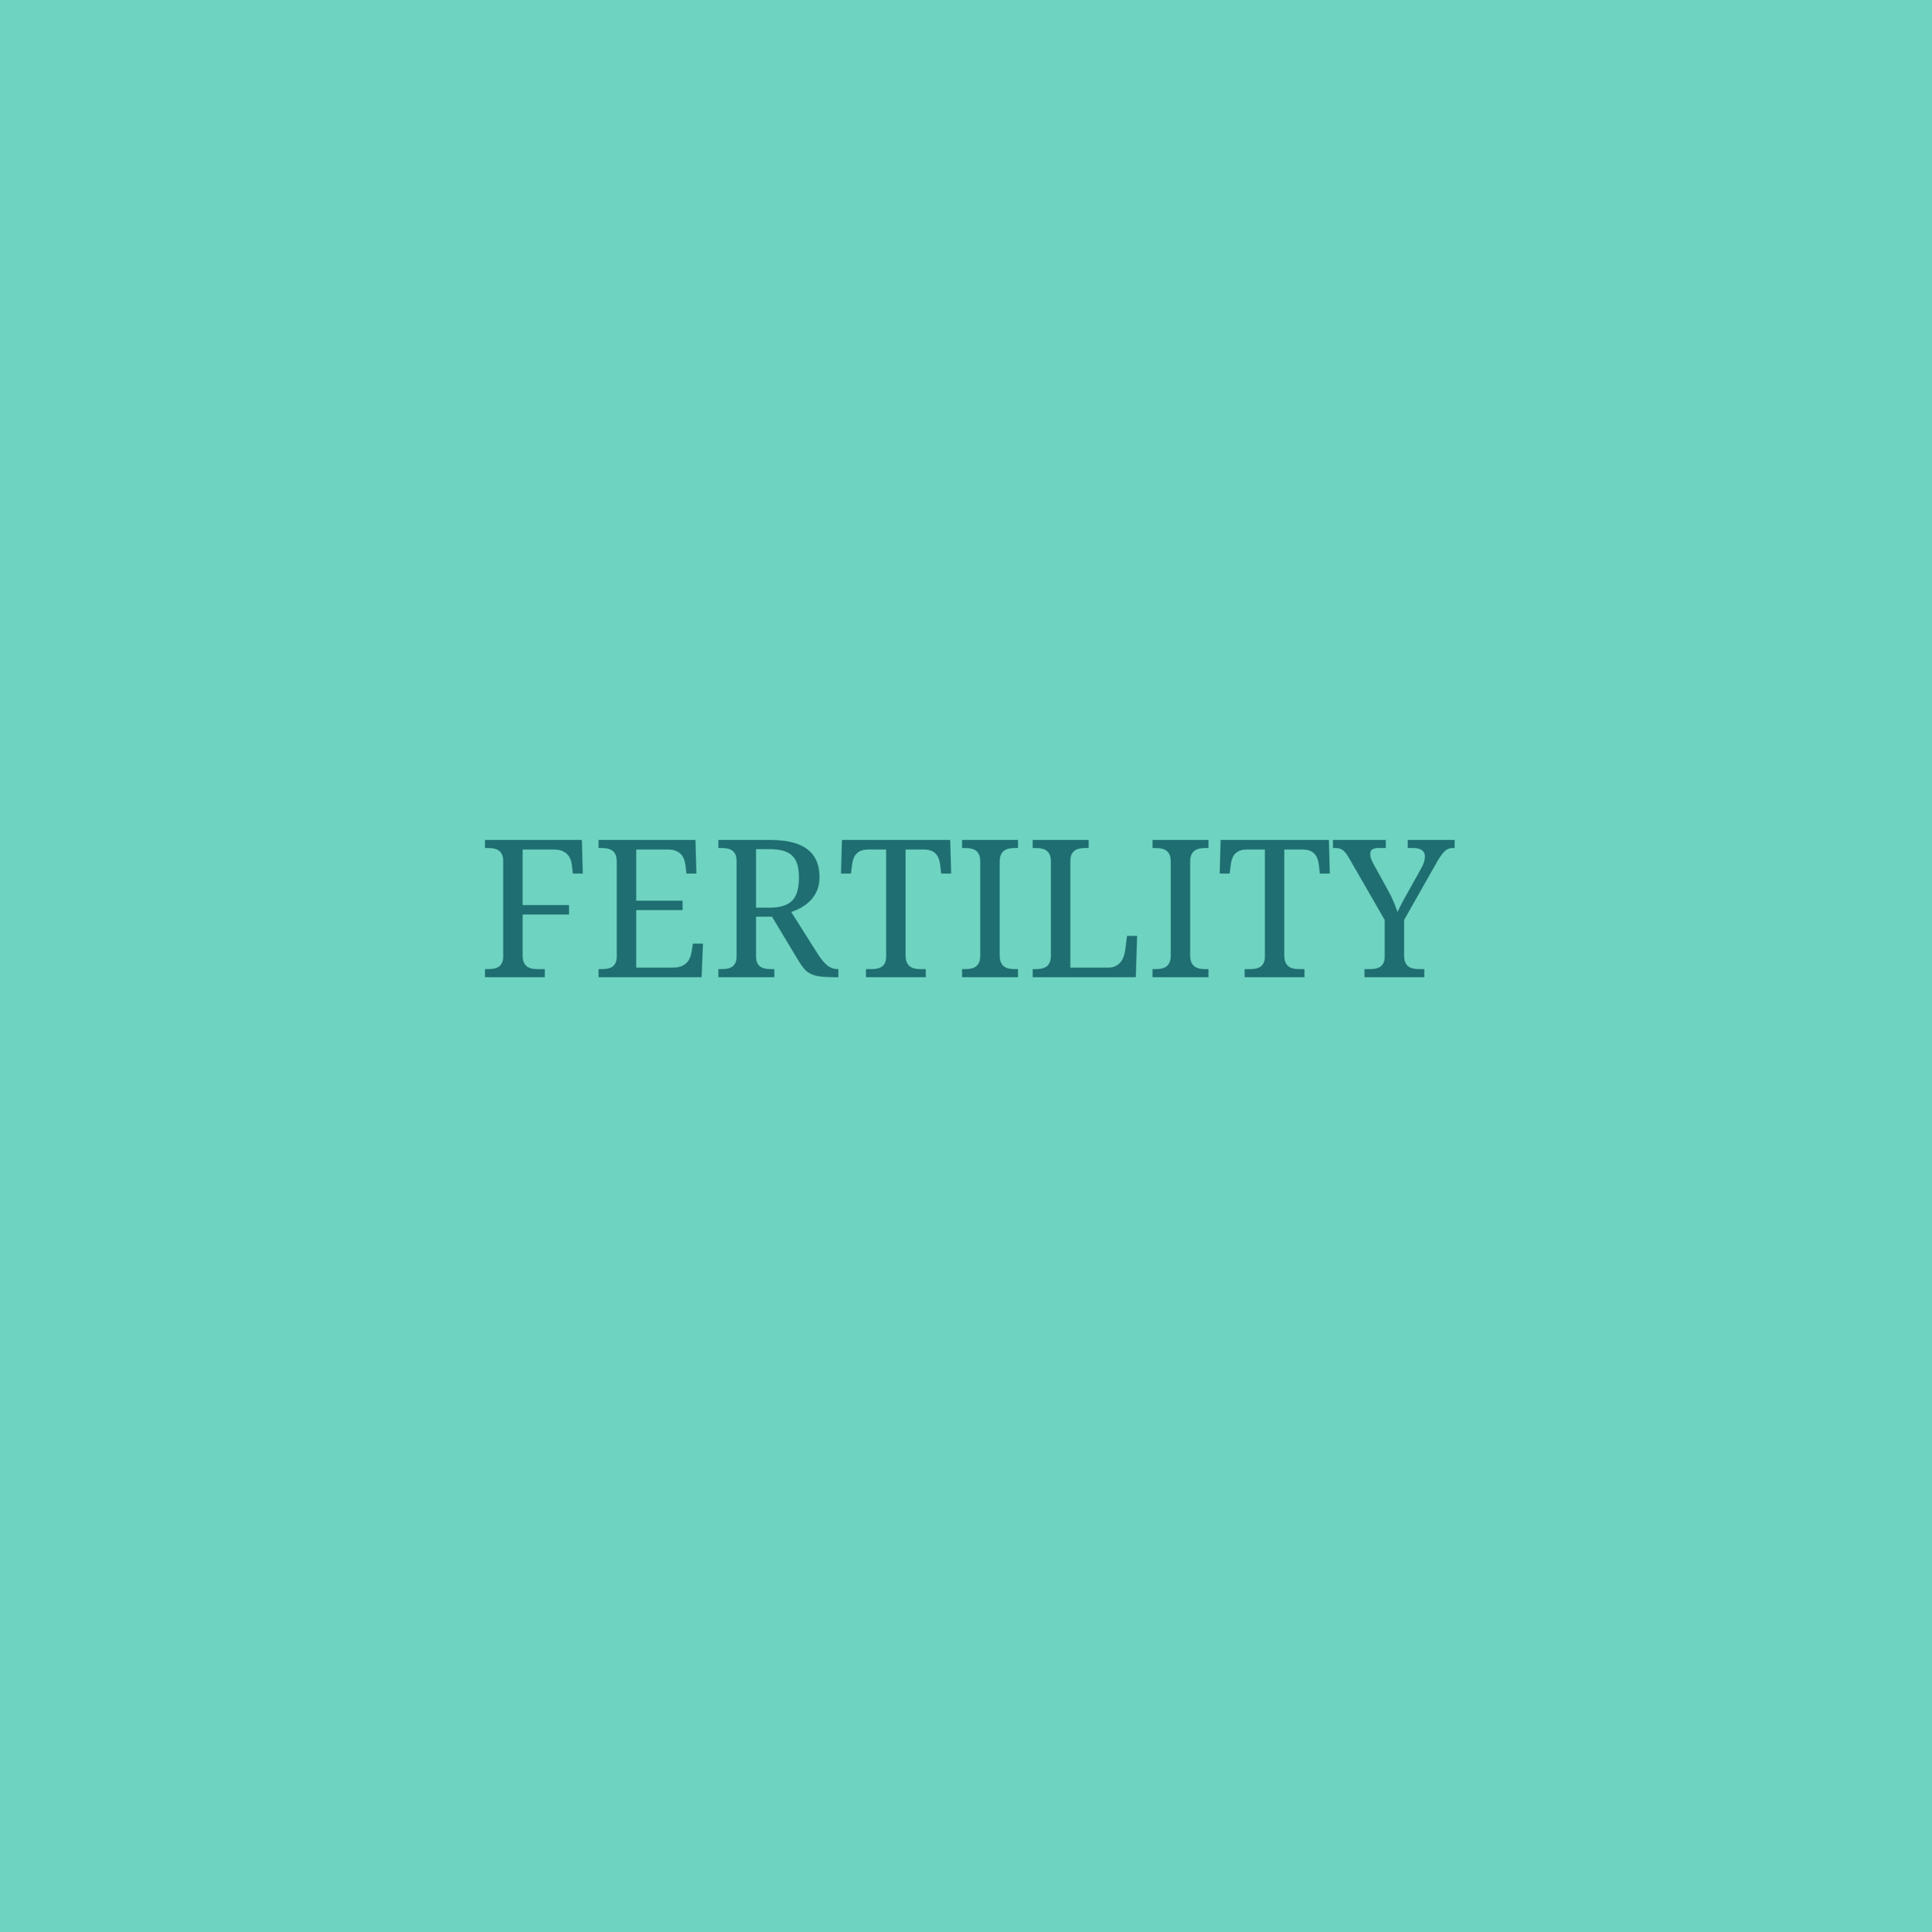 Fertility.PNG